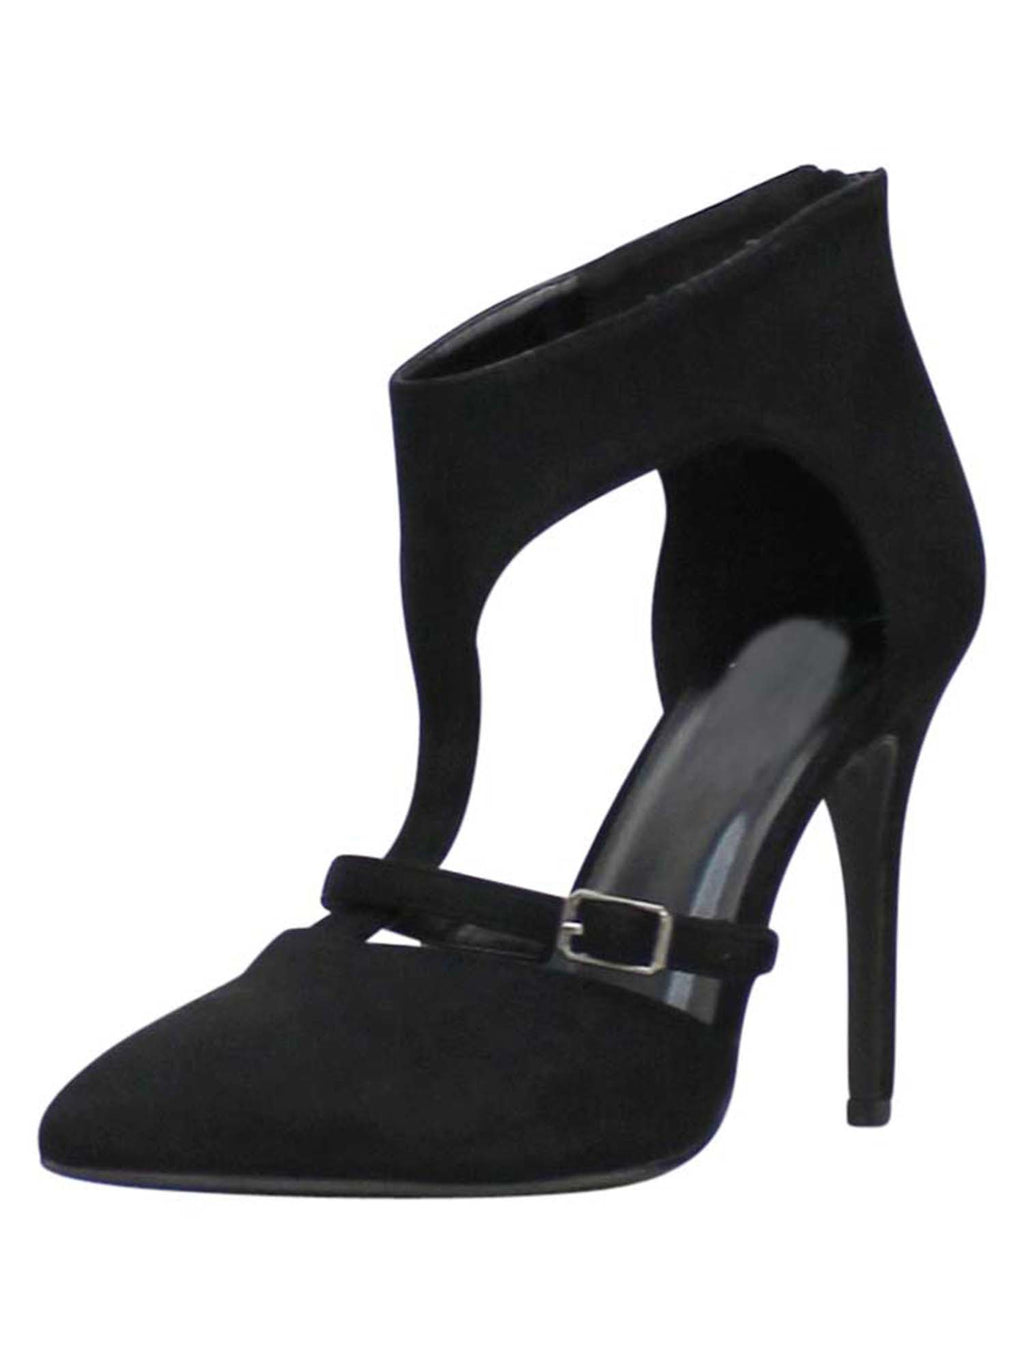 Black Strappy Dress Pumps For Women